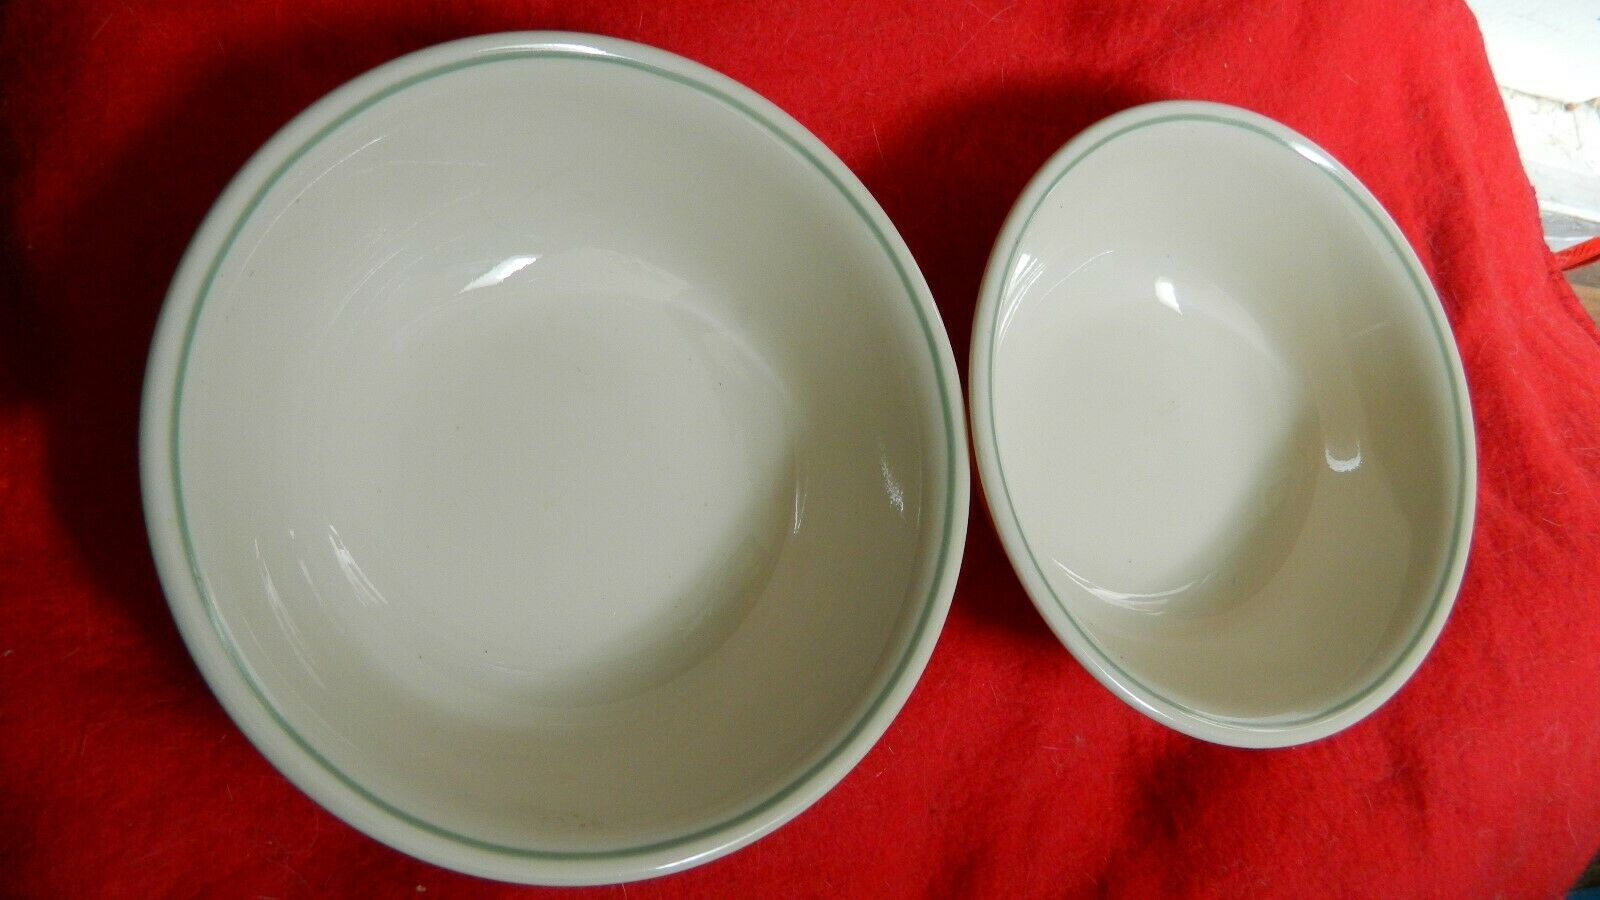 Primary image for CORELLE CALICO ROSE SOUP / CEREAL BOWLS 18 OUNCE x 2 GUC FREE USA SHIPPING